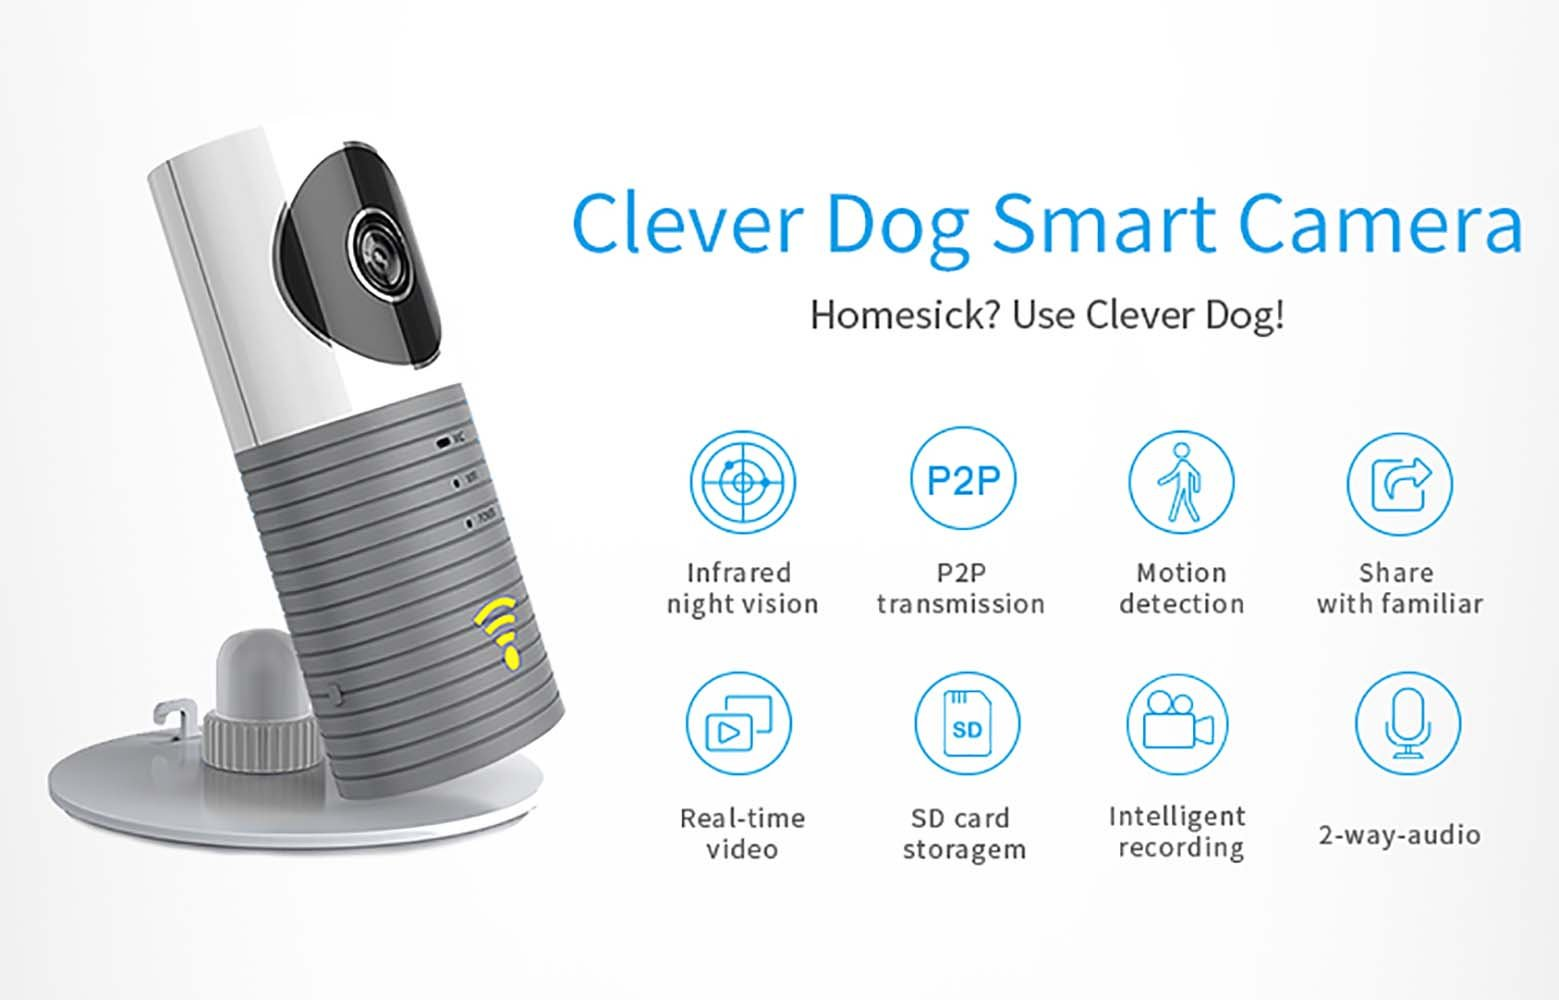 Clever dog Wireless security wifi cameras Smart Surveillance camera(Grey) Clerver dog Wireless Baby Monitor: Video, audio, alerts on smart phone and tablets, it will help you stay connected with what you love, no matter where you are via WiFi, 3G or 4G network IP camera,use your own 5V wall charger(Not included), No battery inside Support Micro SD card, up to 32GB (not included), Best motion detection distant is 4 meter to 6 meter 2